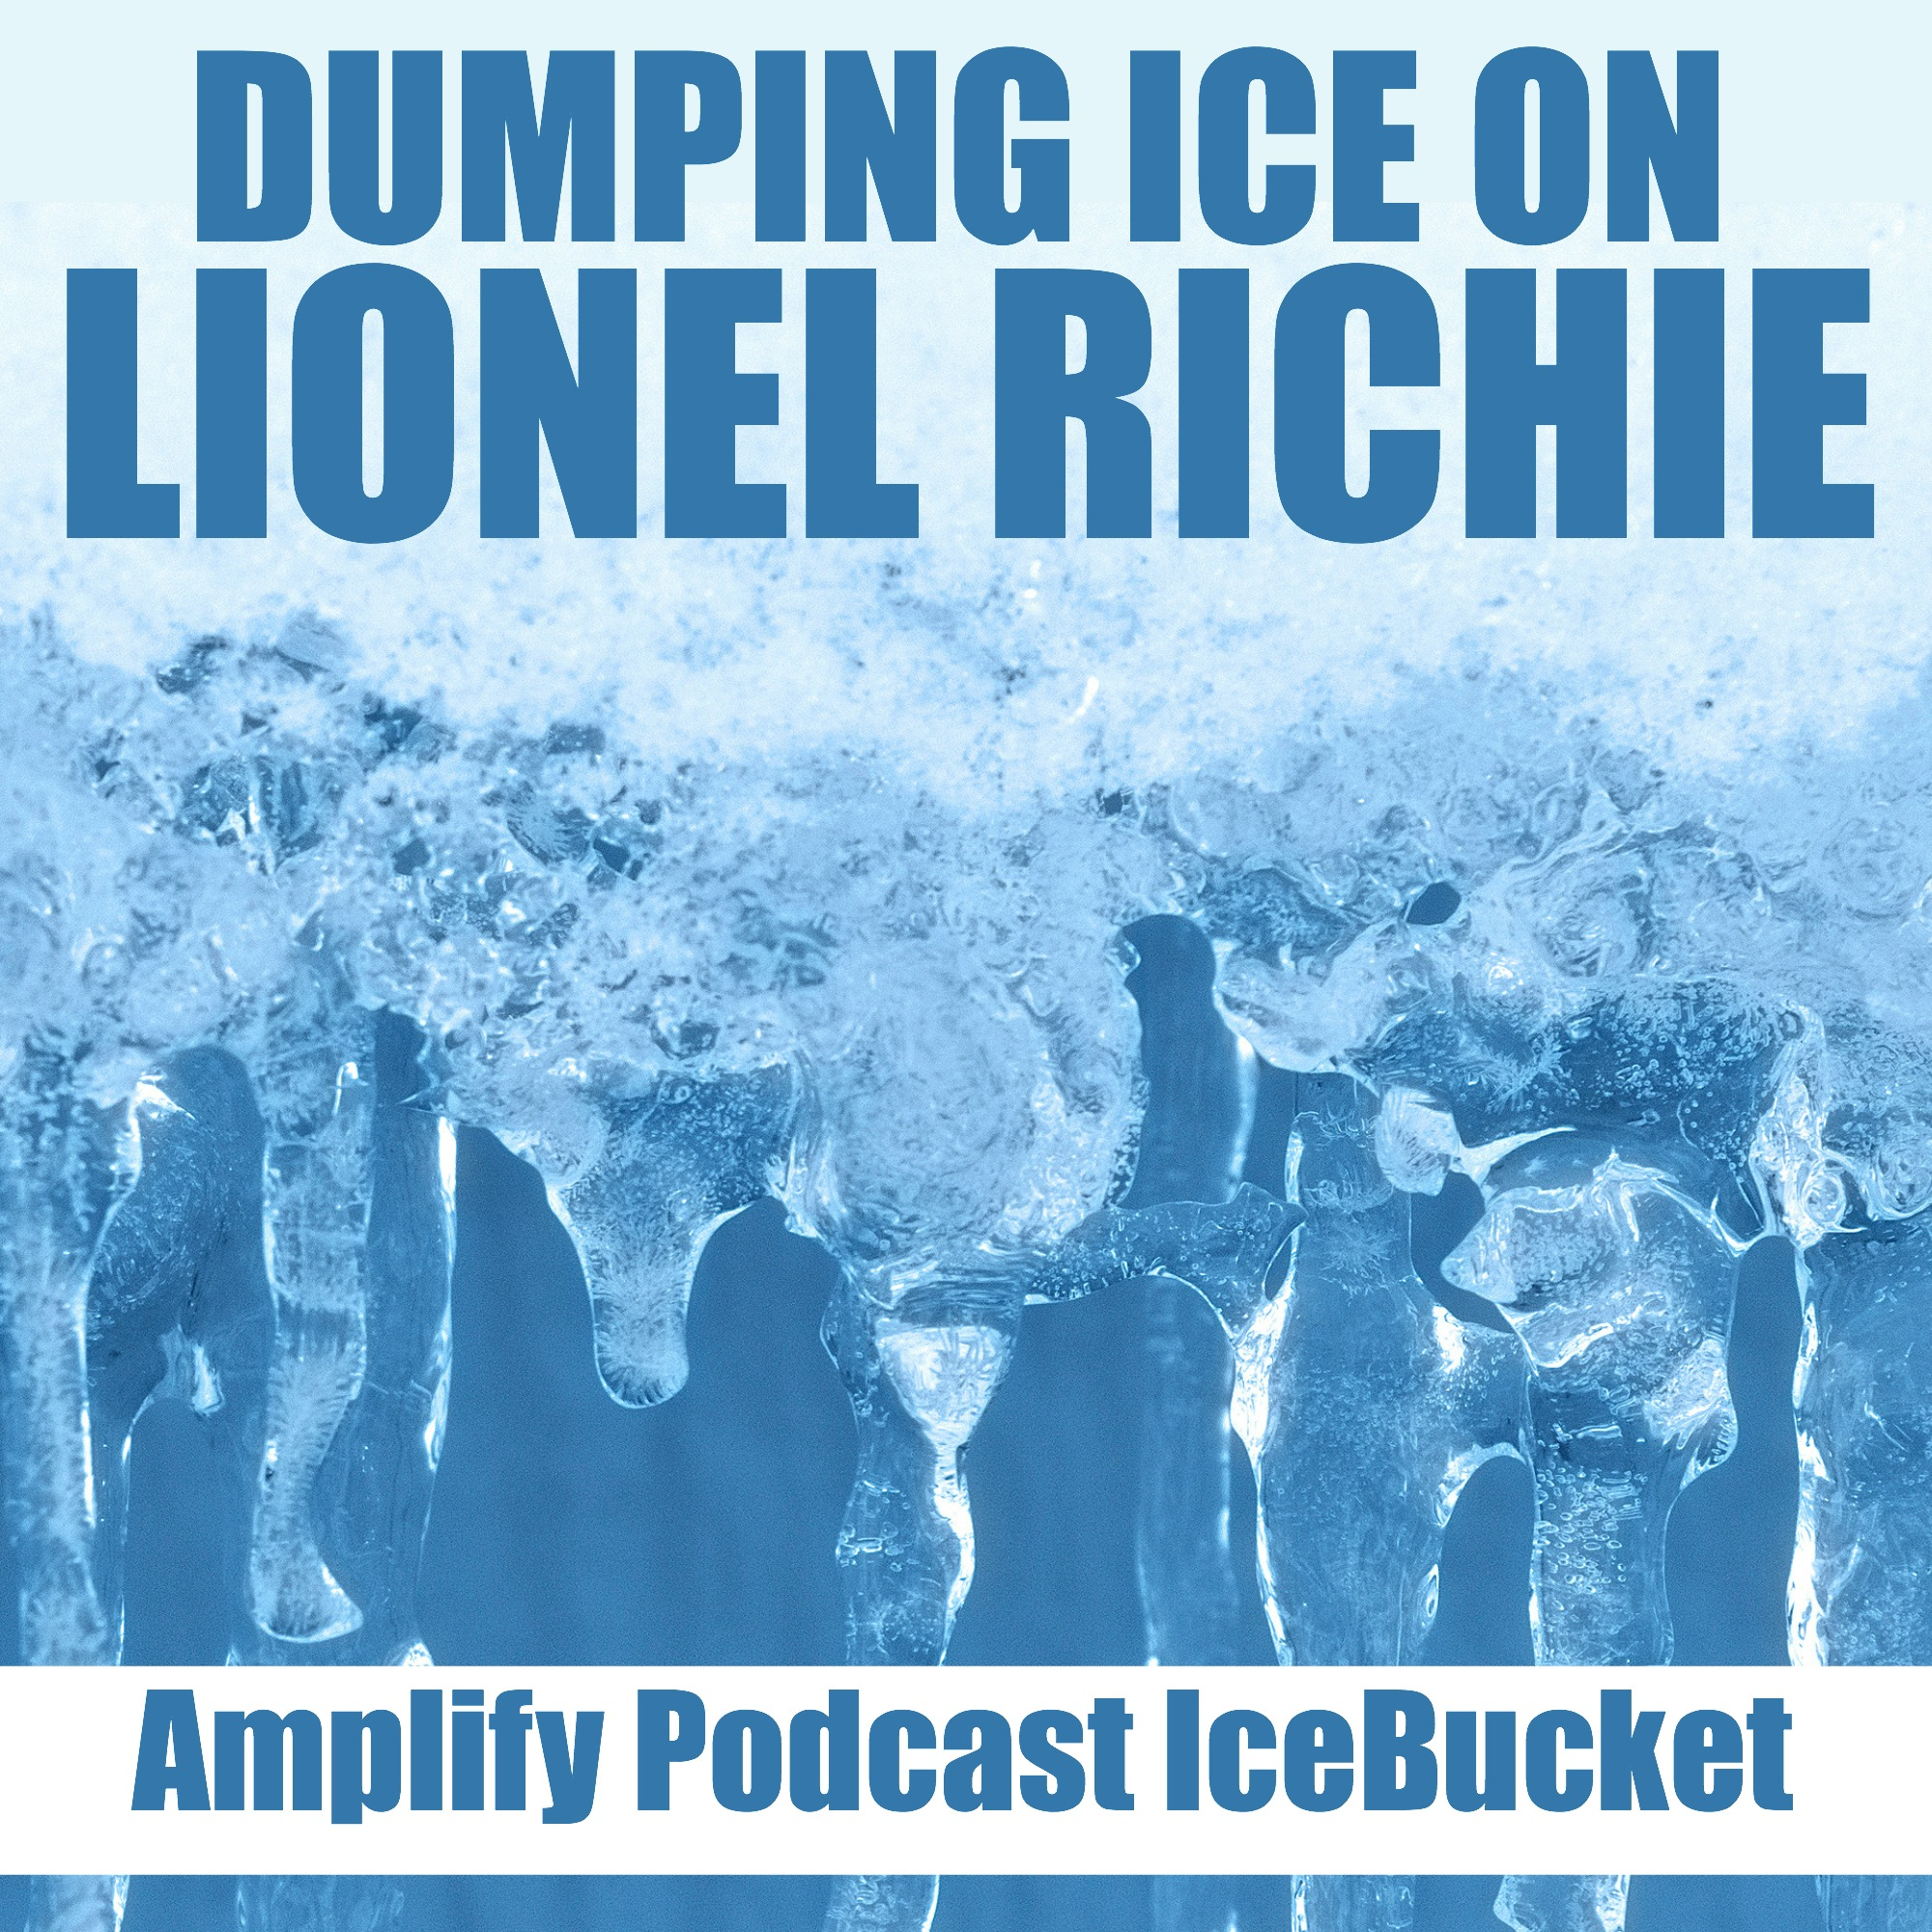 Dumping Ice on Lionel Richie